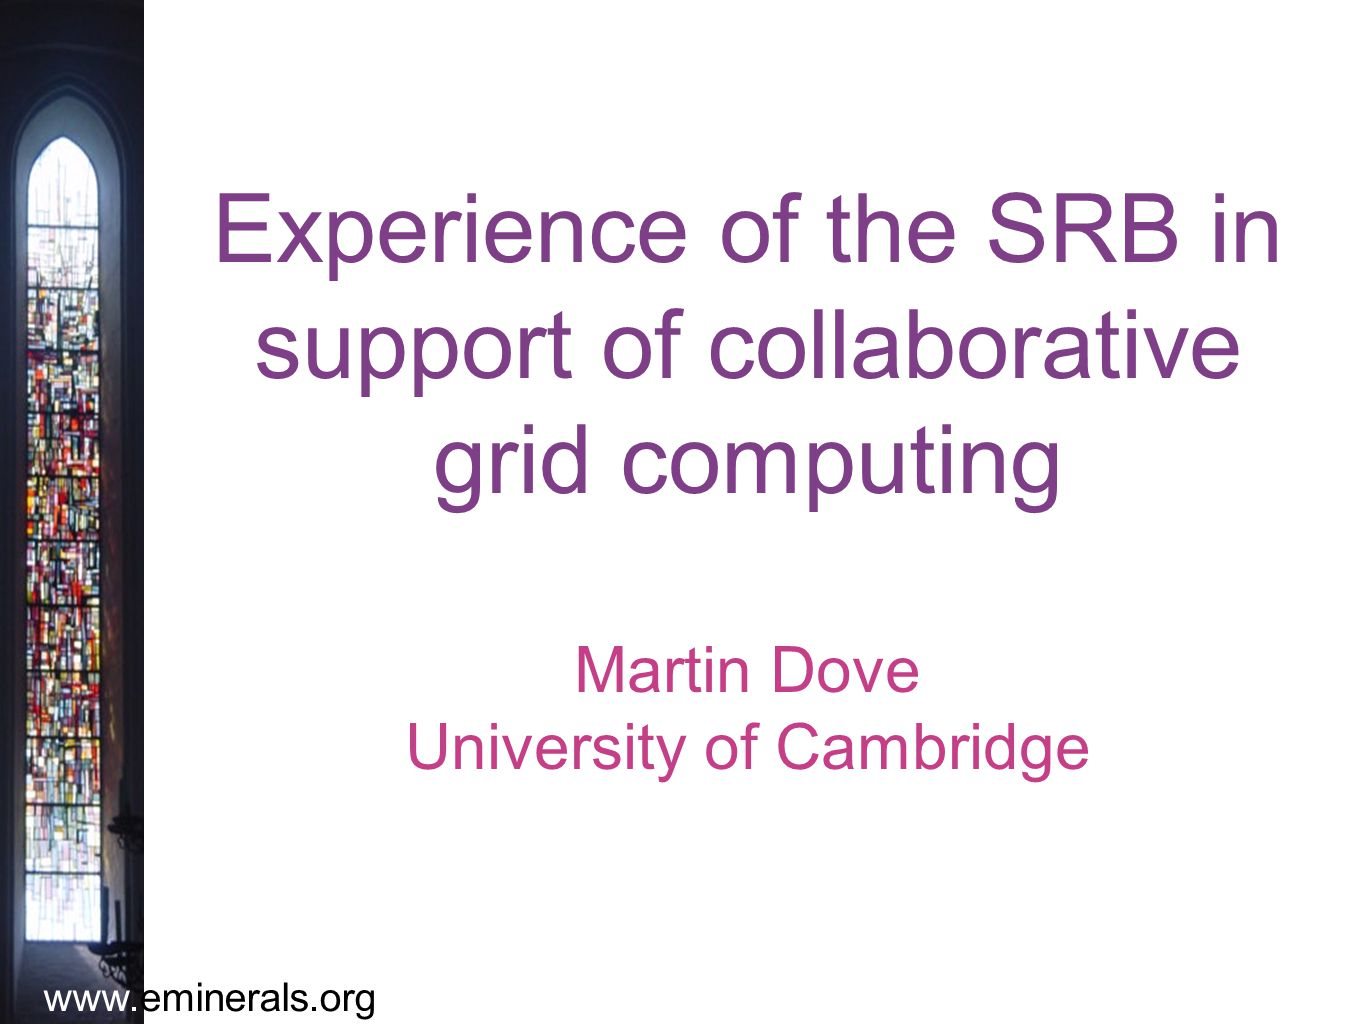 www.eminerals.org Experience of the SRB in support of collaborative grid computing Martin Dove University of Cambridge